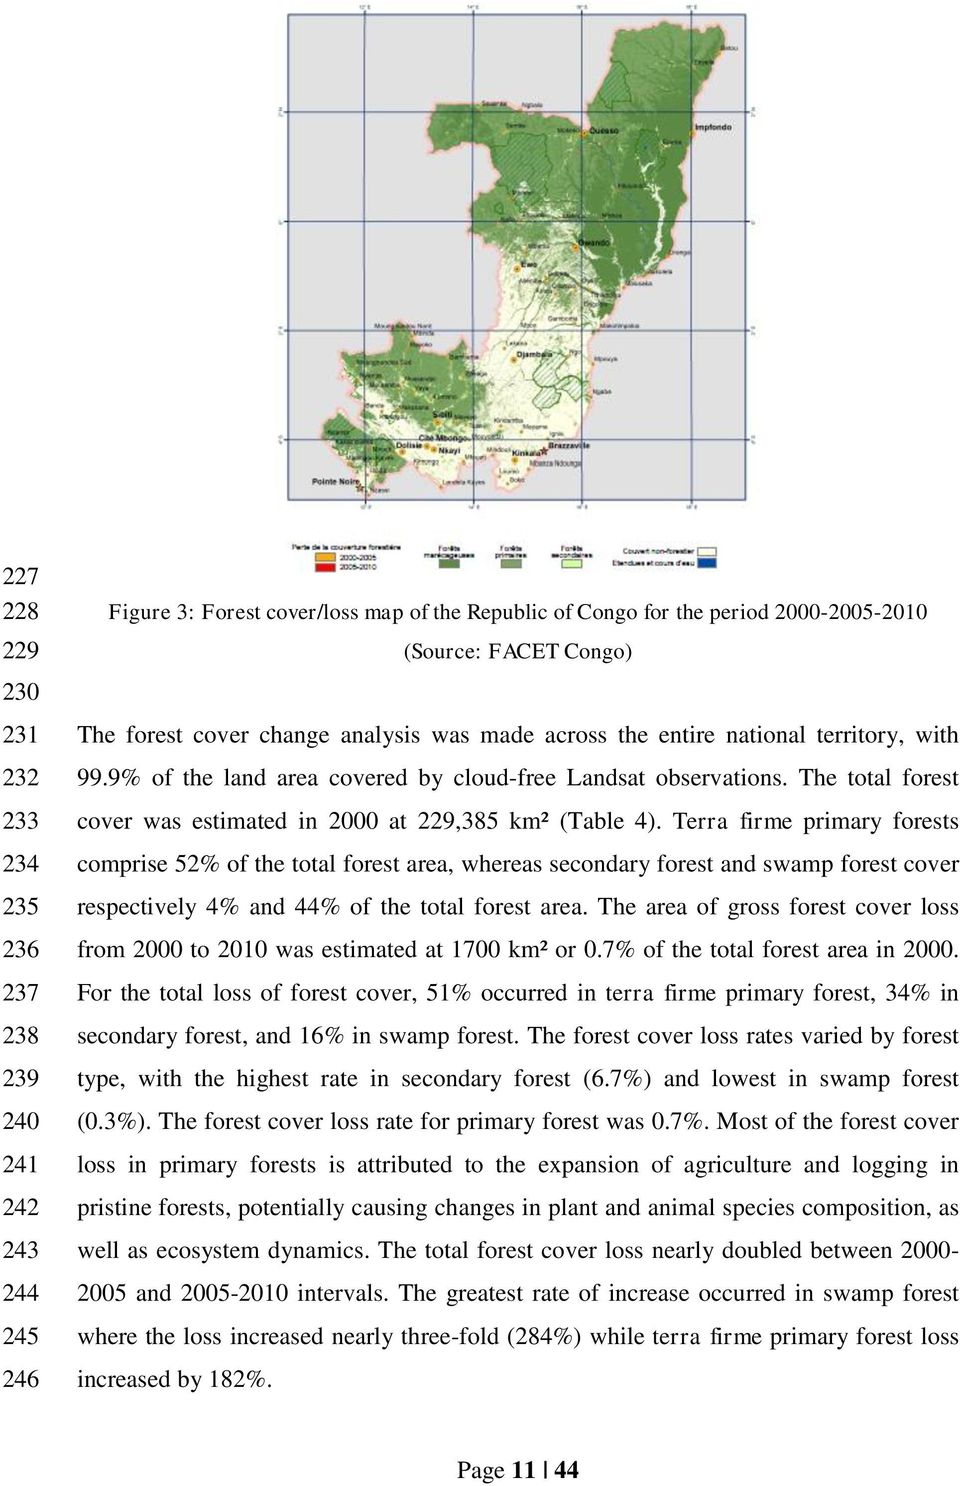 The total forest cover was estimated in 2000 at 229,385 km² (Table 4).